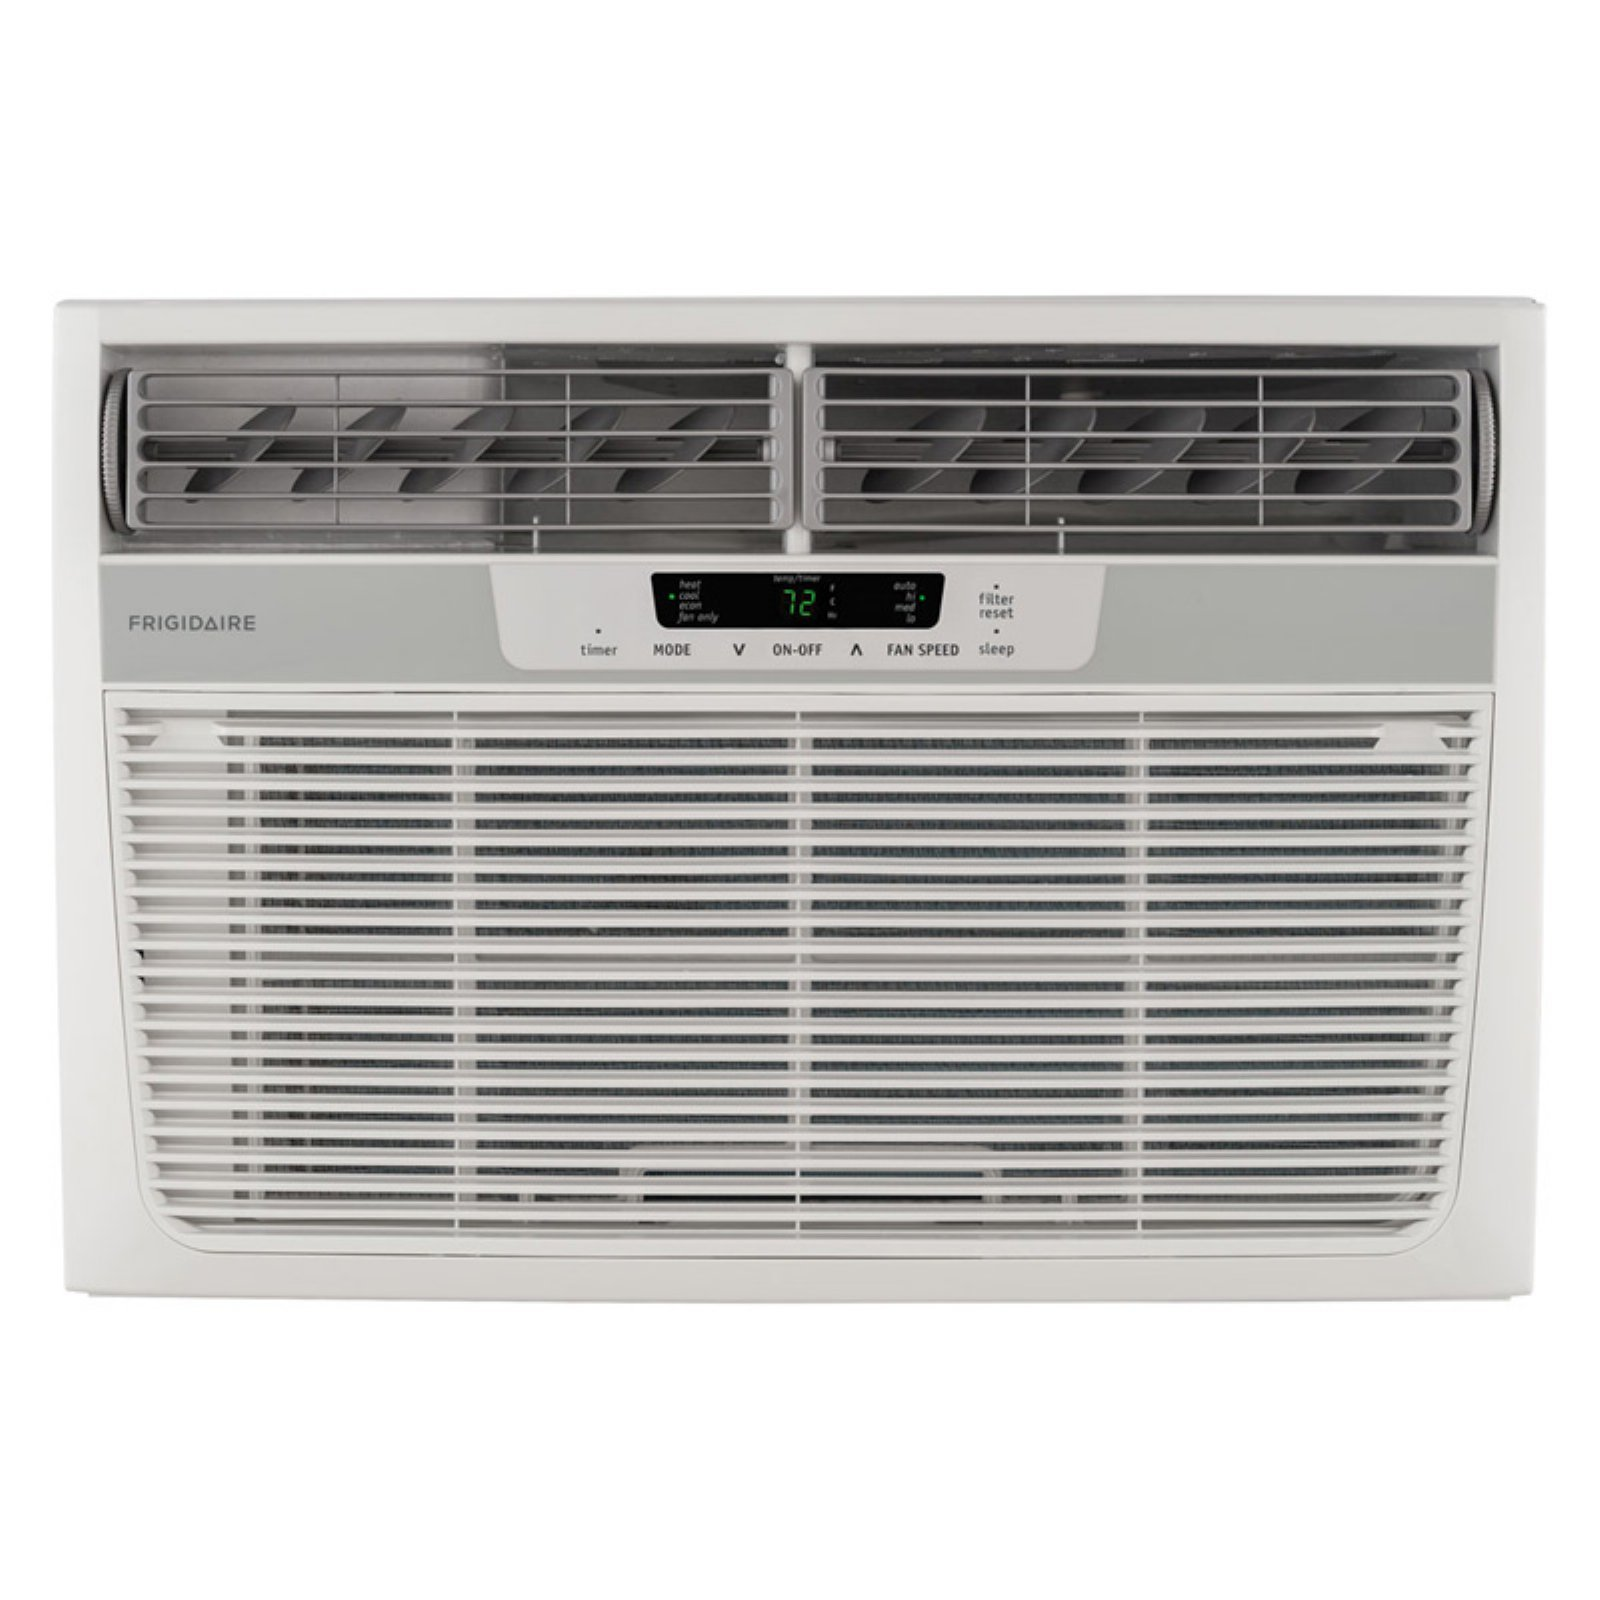 Frigidaire FFRH0822R1 Heat/Cool Window Air Conditioner - Walmart.com